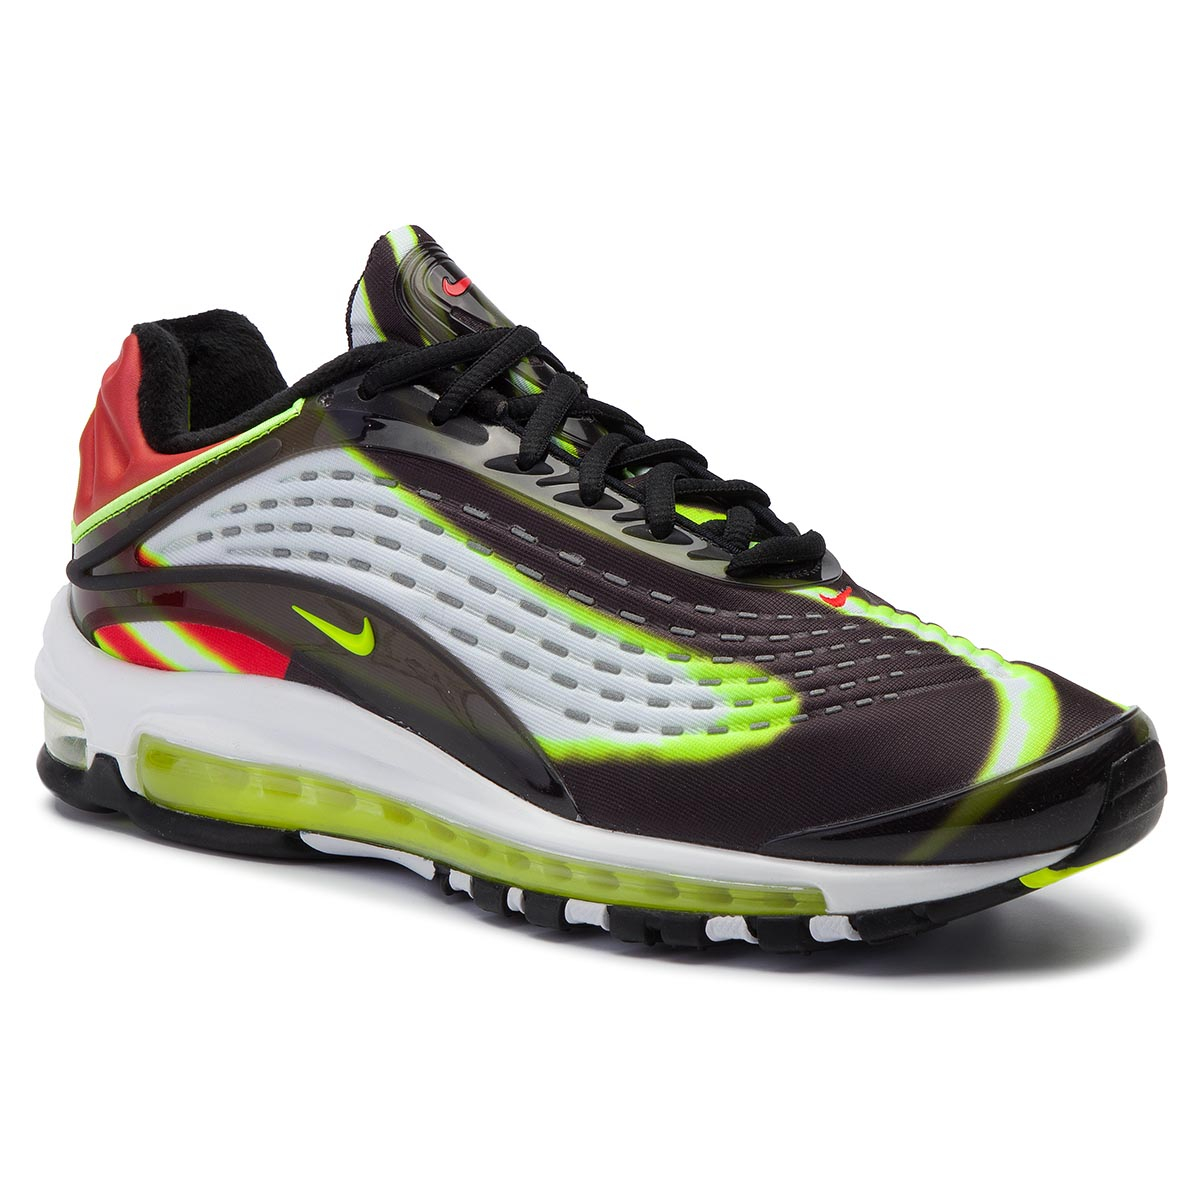 b1a6054174 Shoes NIKE - Air Max 95 Se (GS) 922173 004 Black/Volt/Ash/White ...